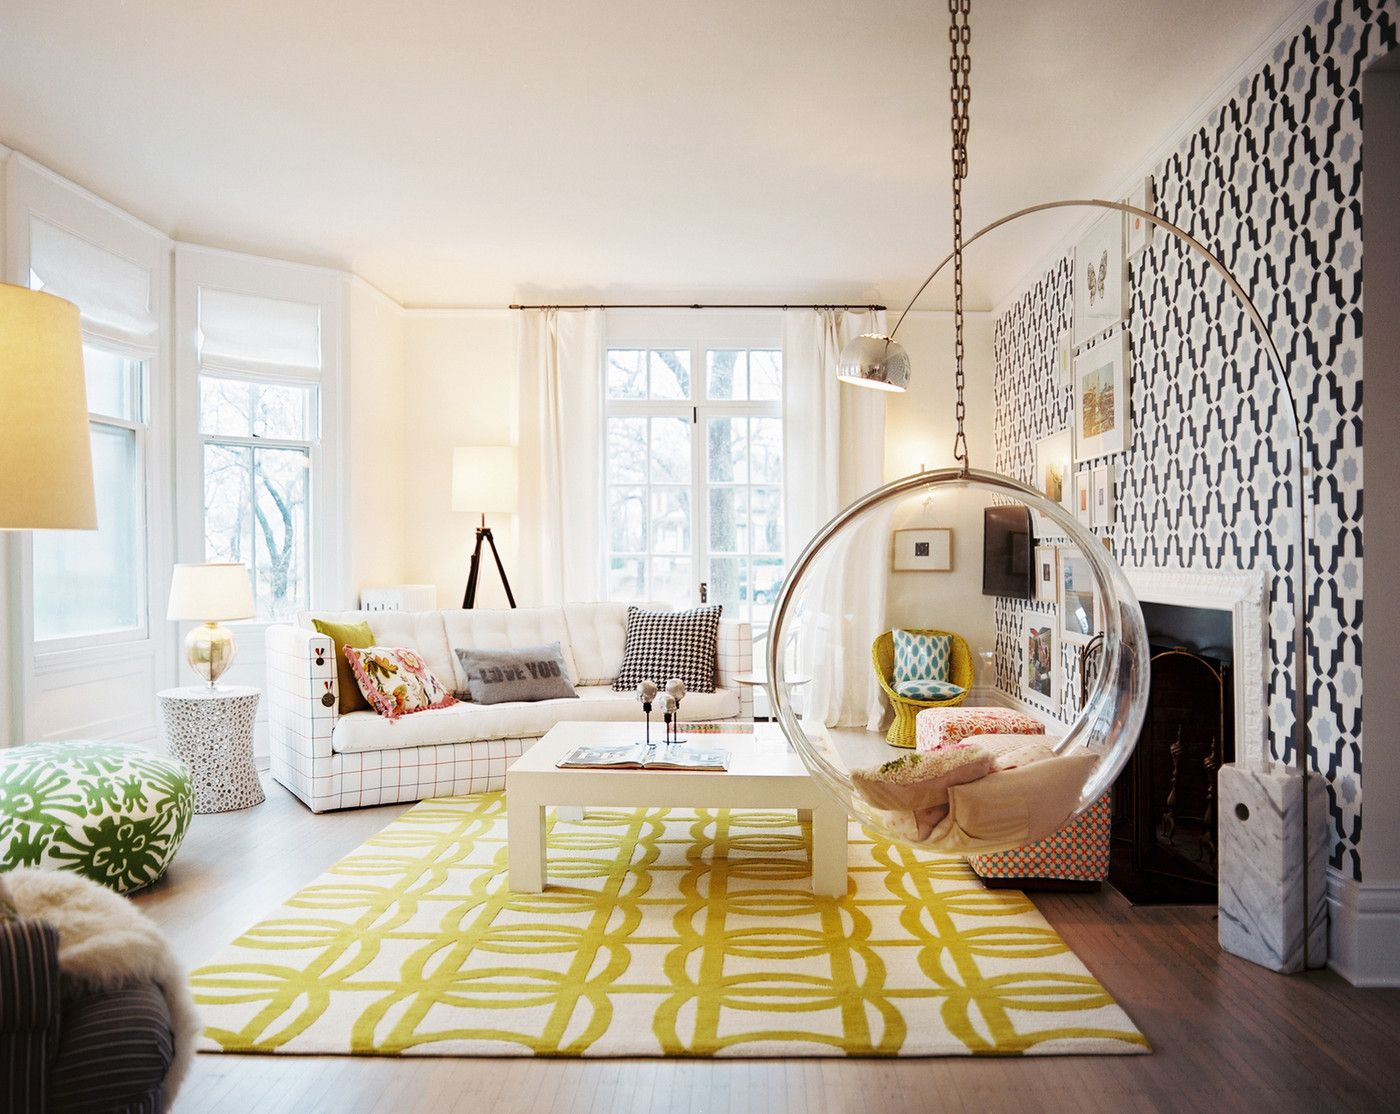 Modern Living Room Photos   Bubble chair, Midcentury modern and ...